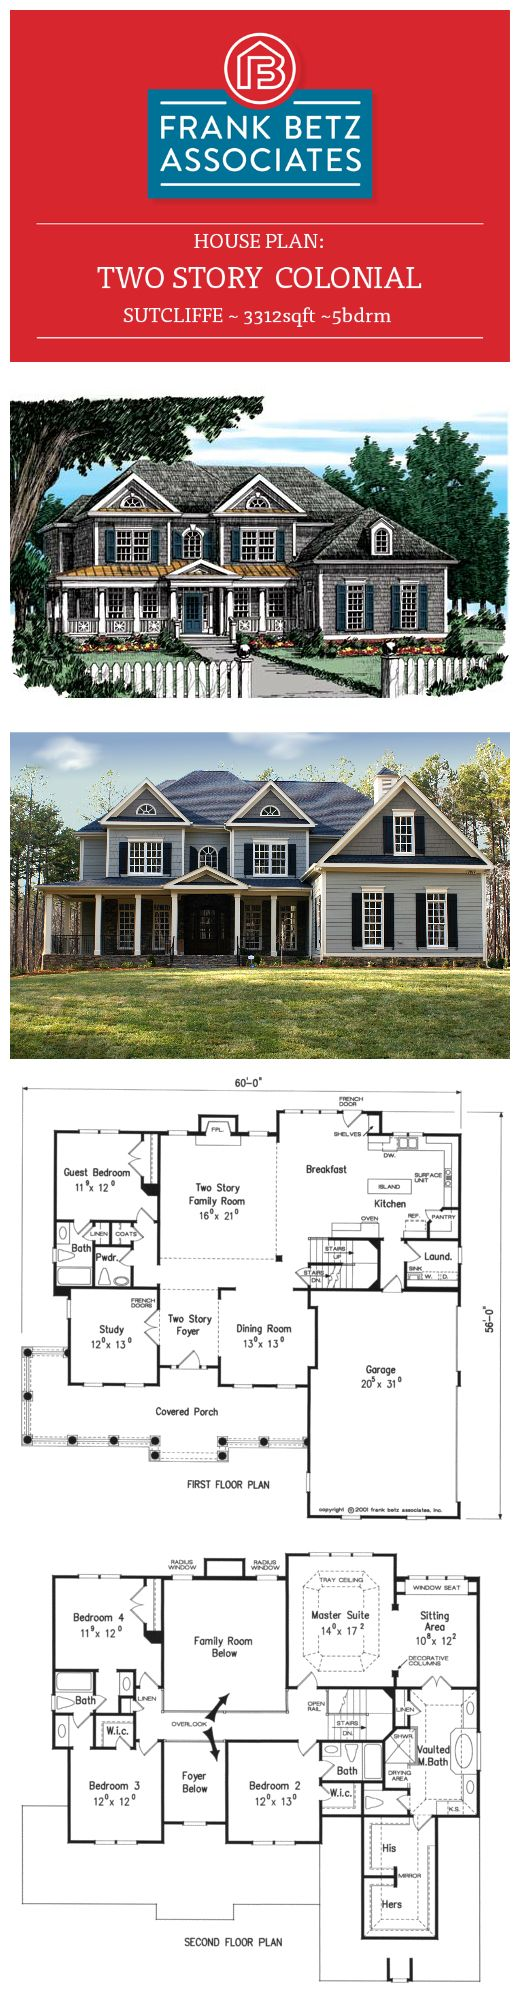 sutcliffe 3312sqft5bdrm two story colonial house plan by frank betz associates inc - Colonial Lake House Plans